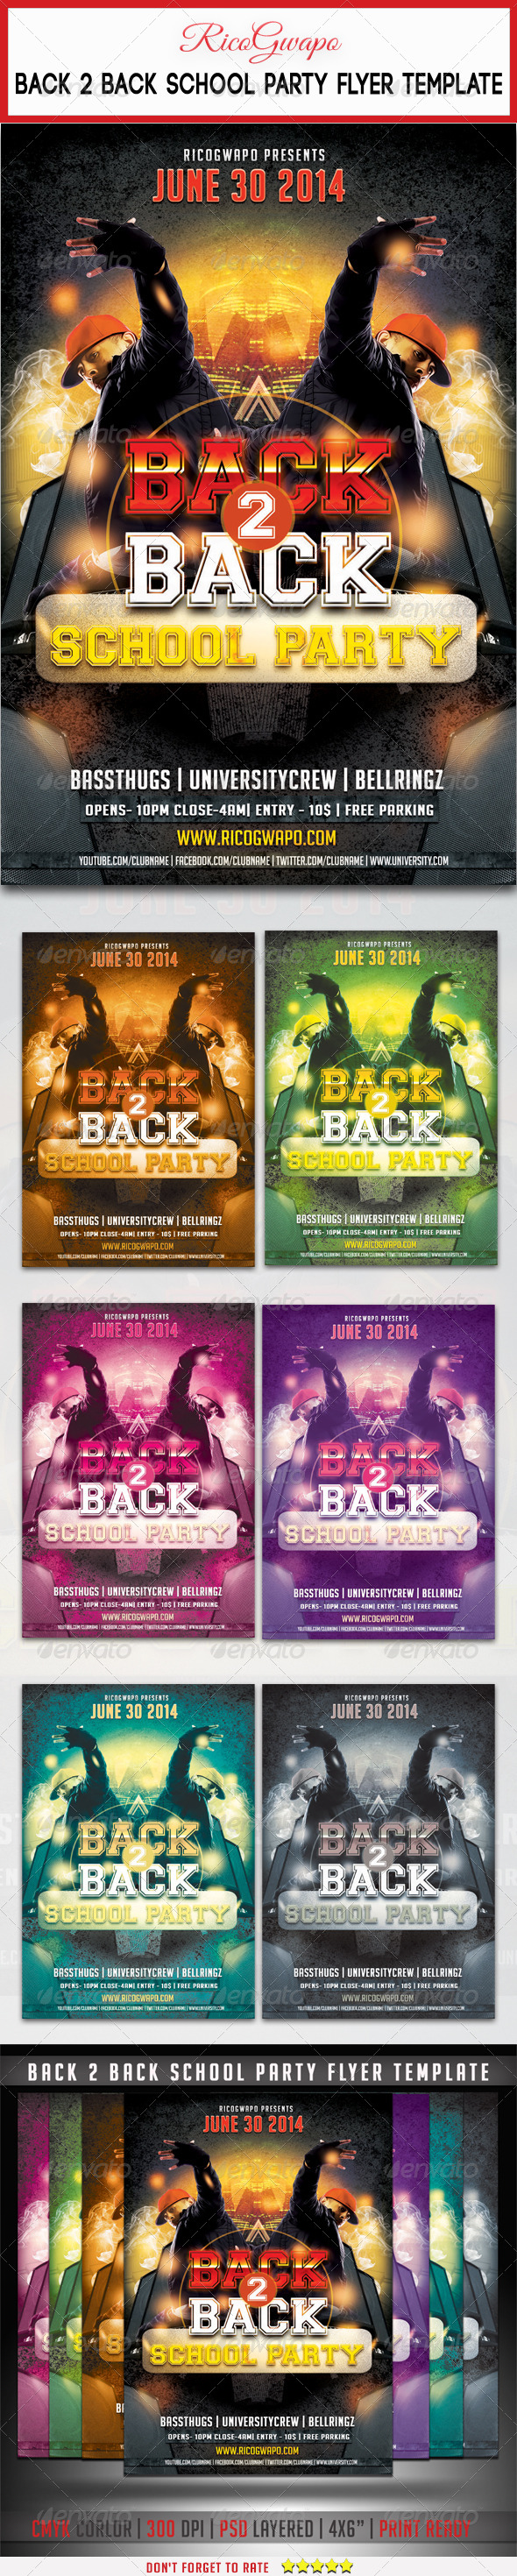 GraphicRiver Back 2 Back School Party Flyer Template 7845778